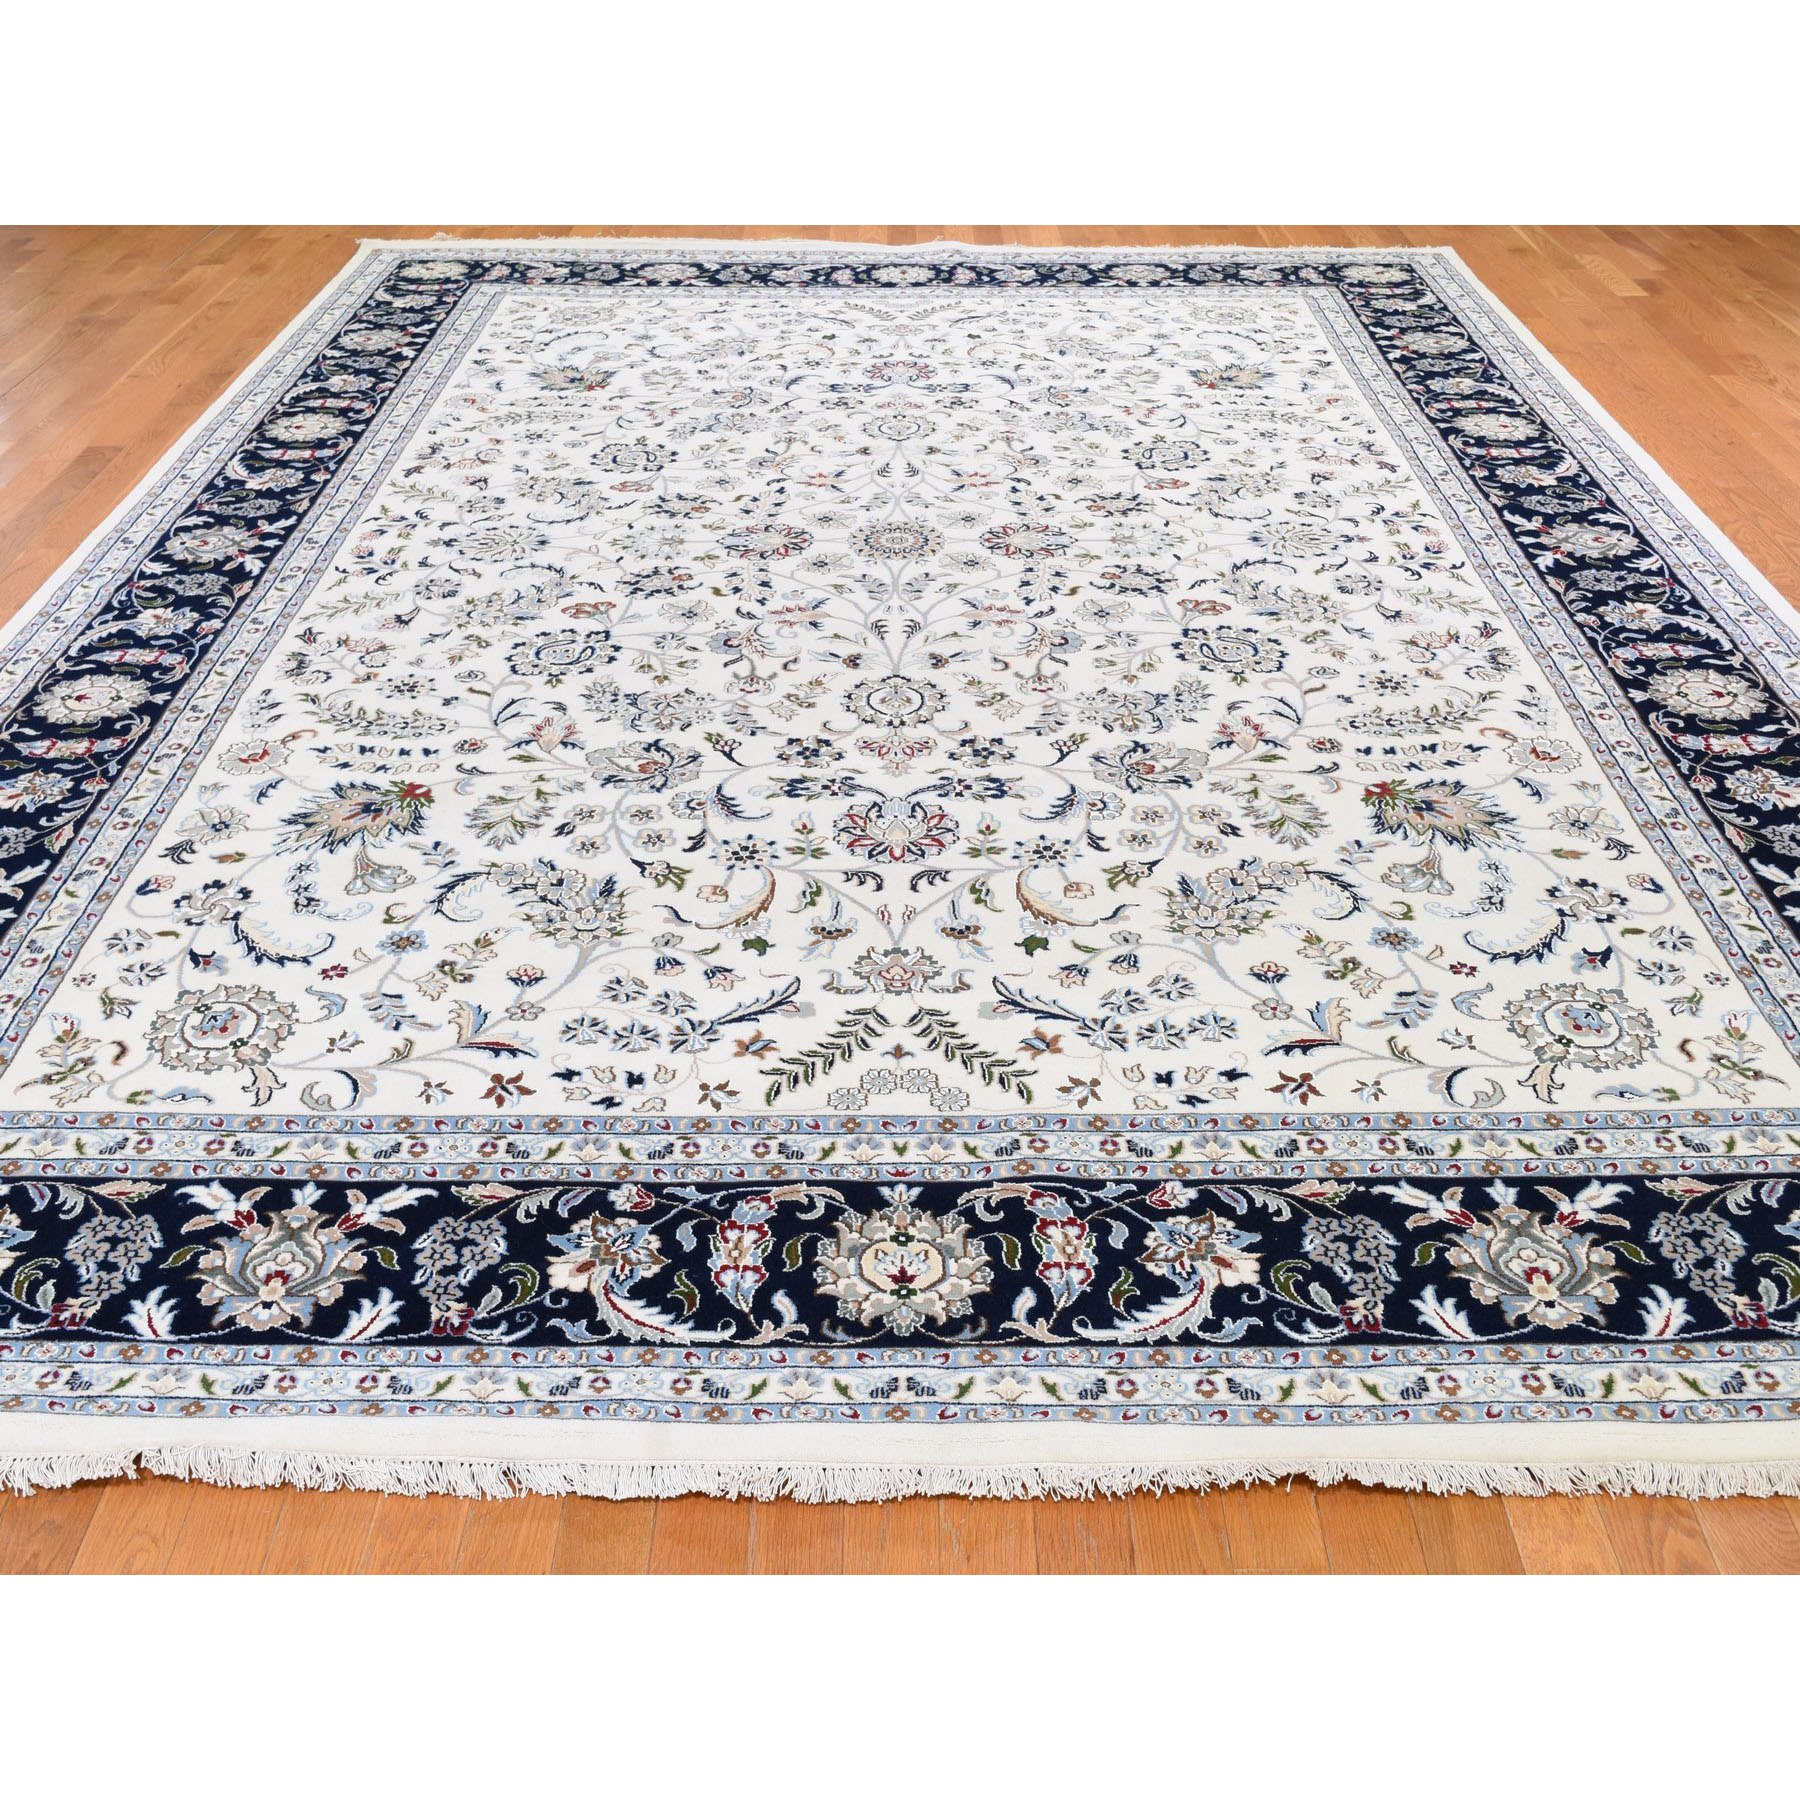 10'x14' Wool And Silk 250 KPSI All Over Design Ivory Nain Hand Knotted Oriental Rug